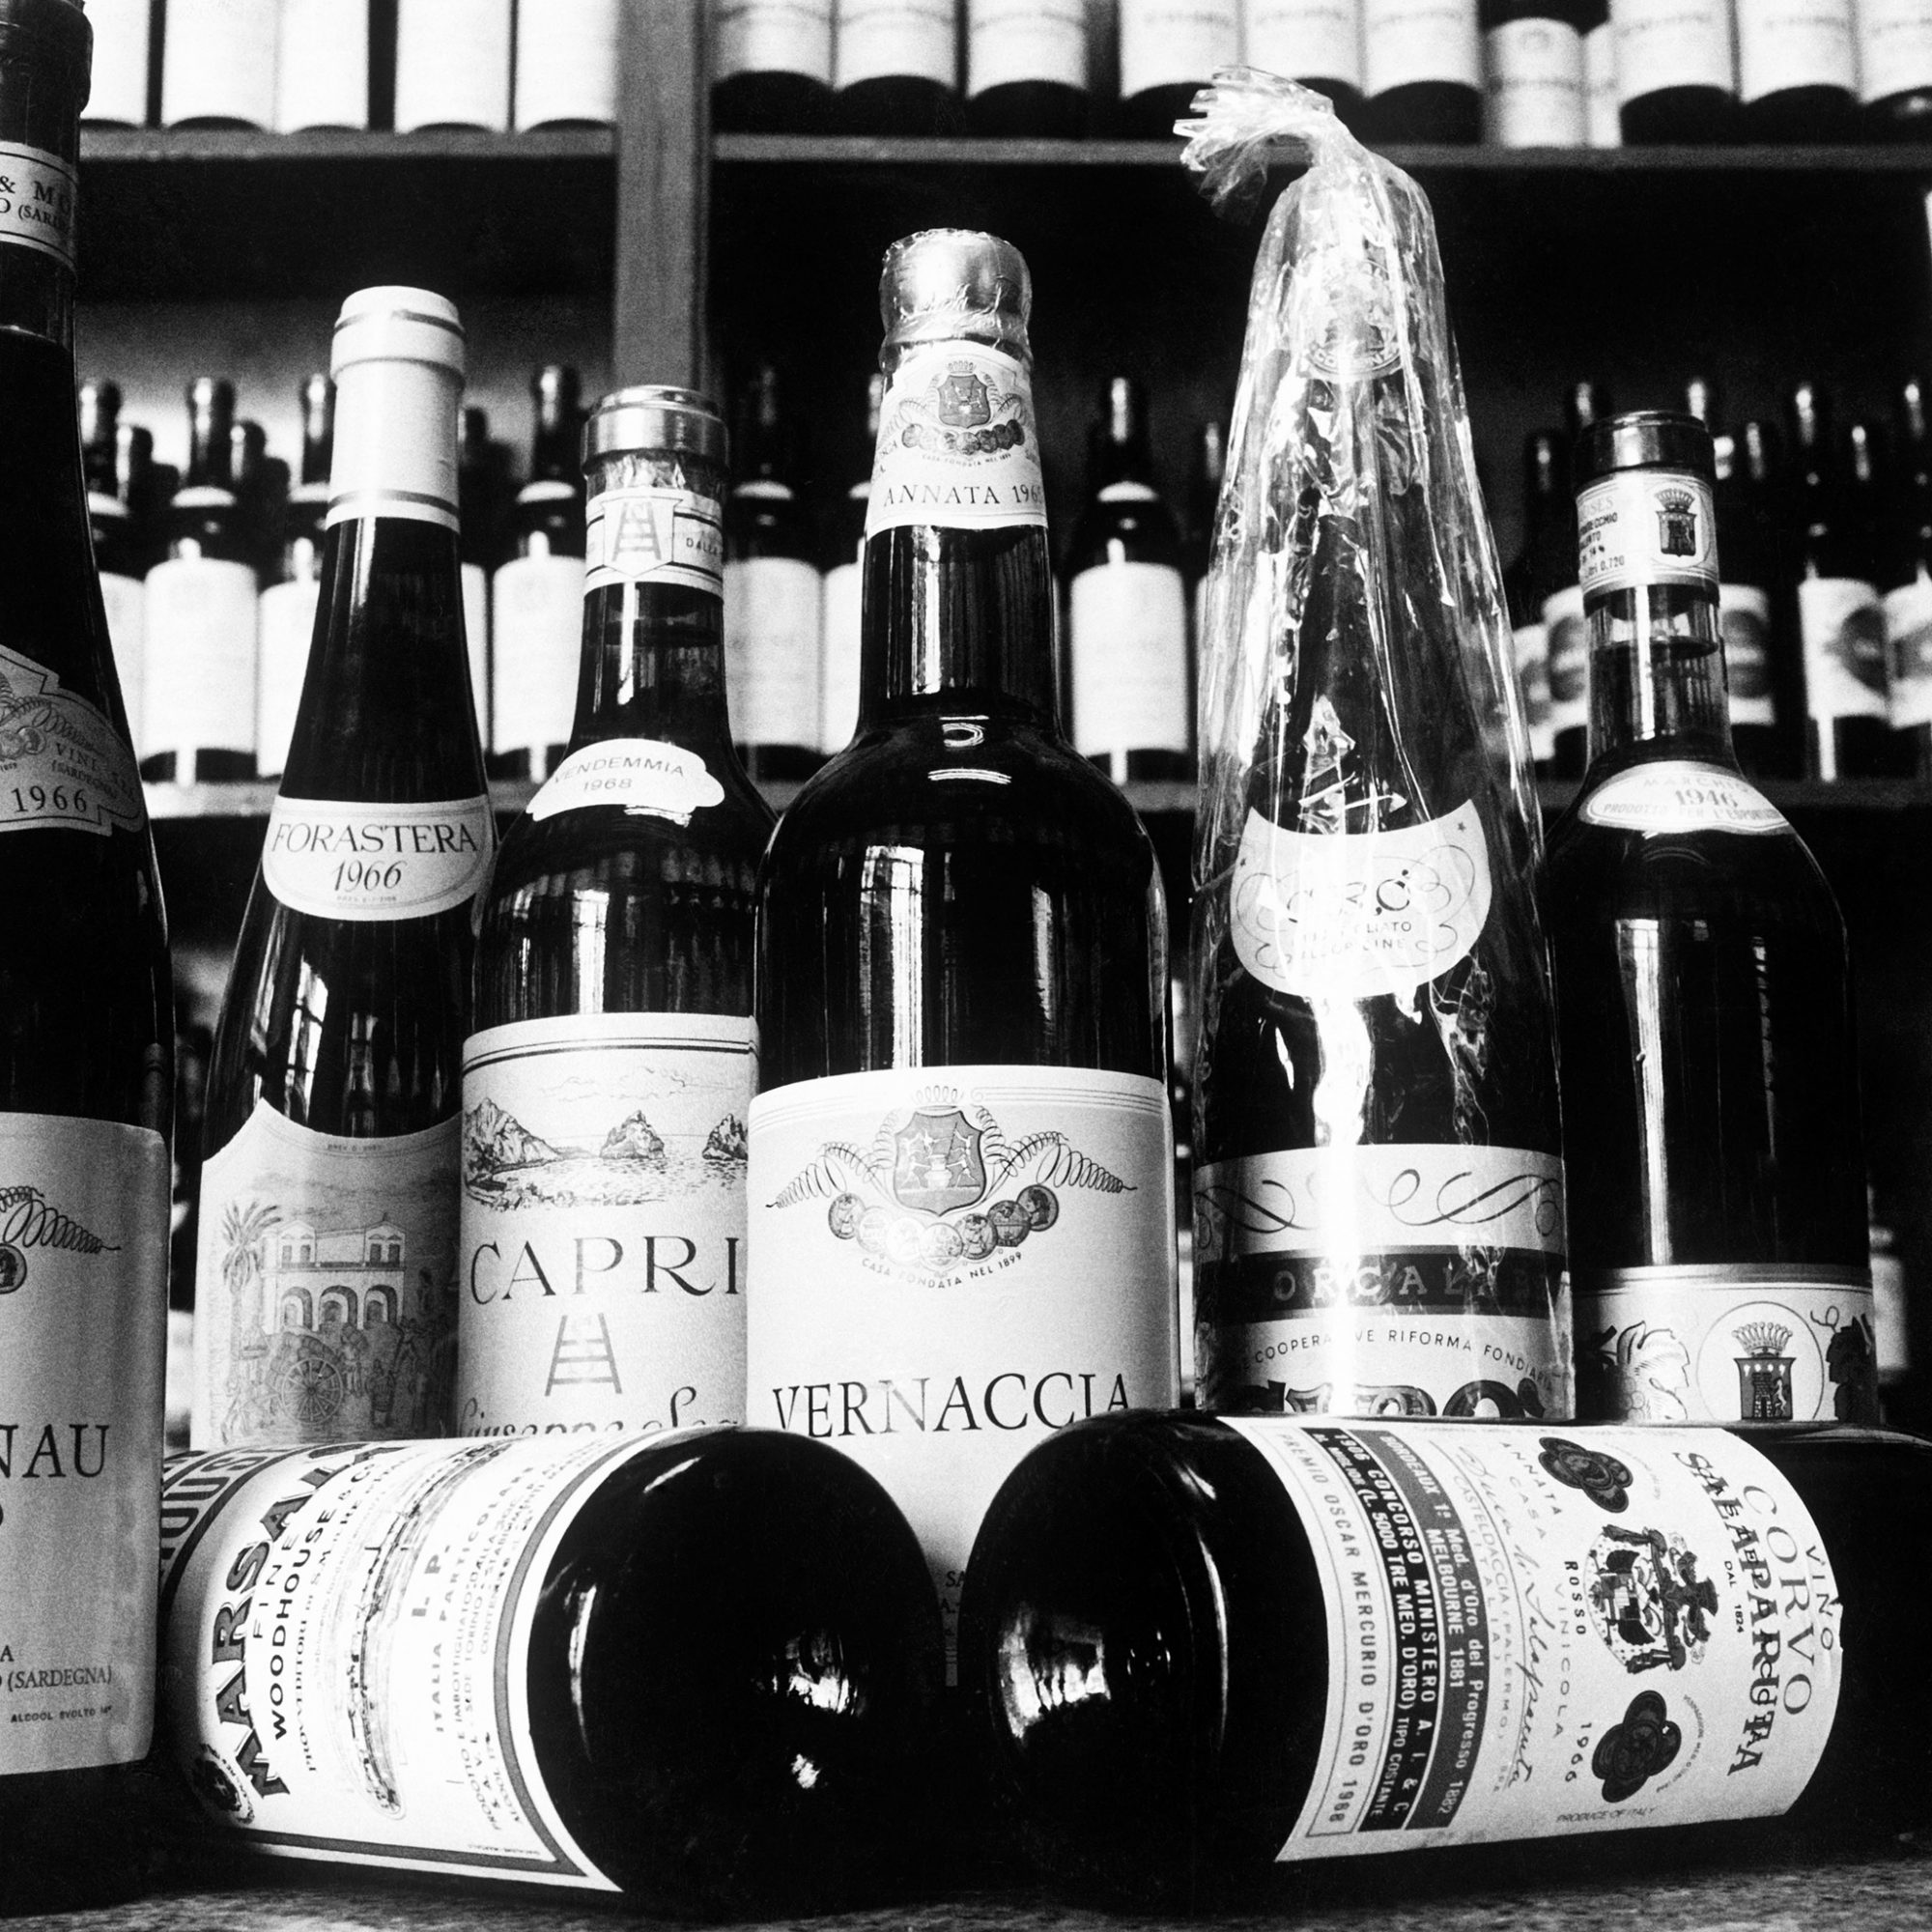 The Most Affordable Italian Wines on the Wine List